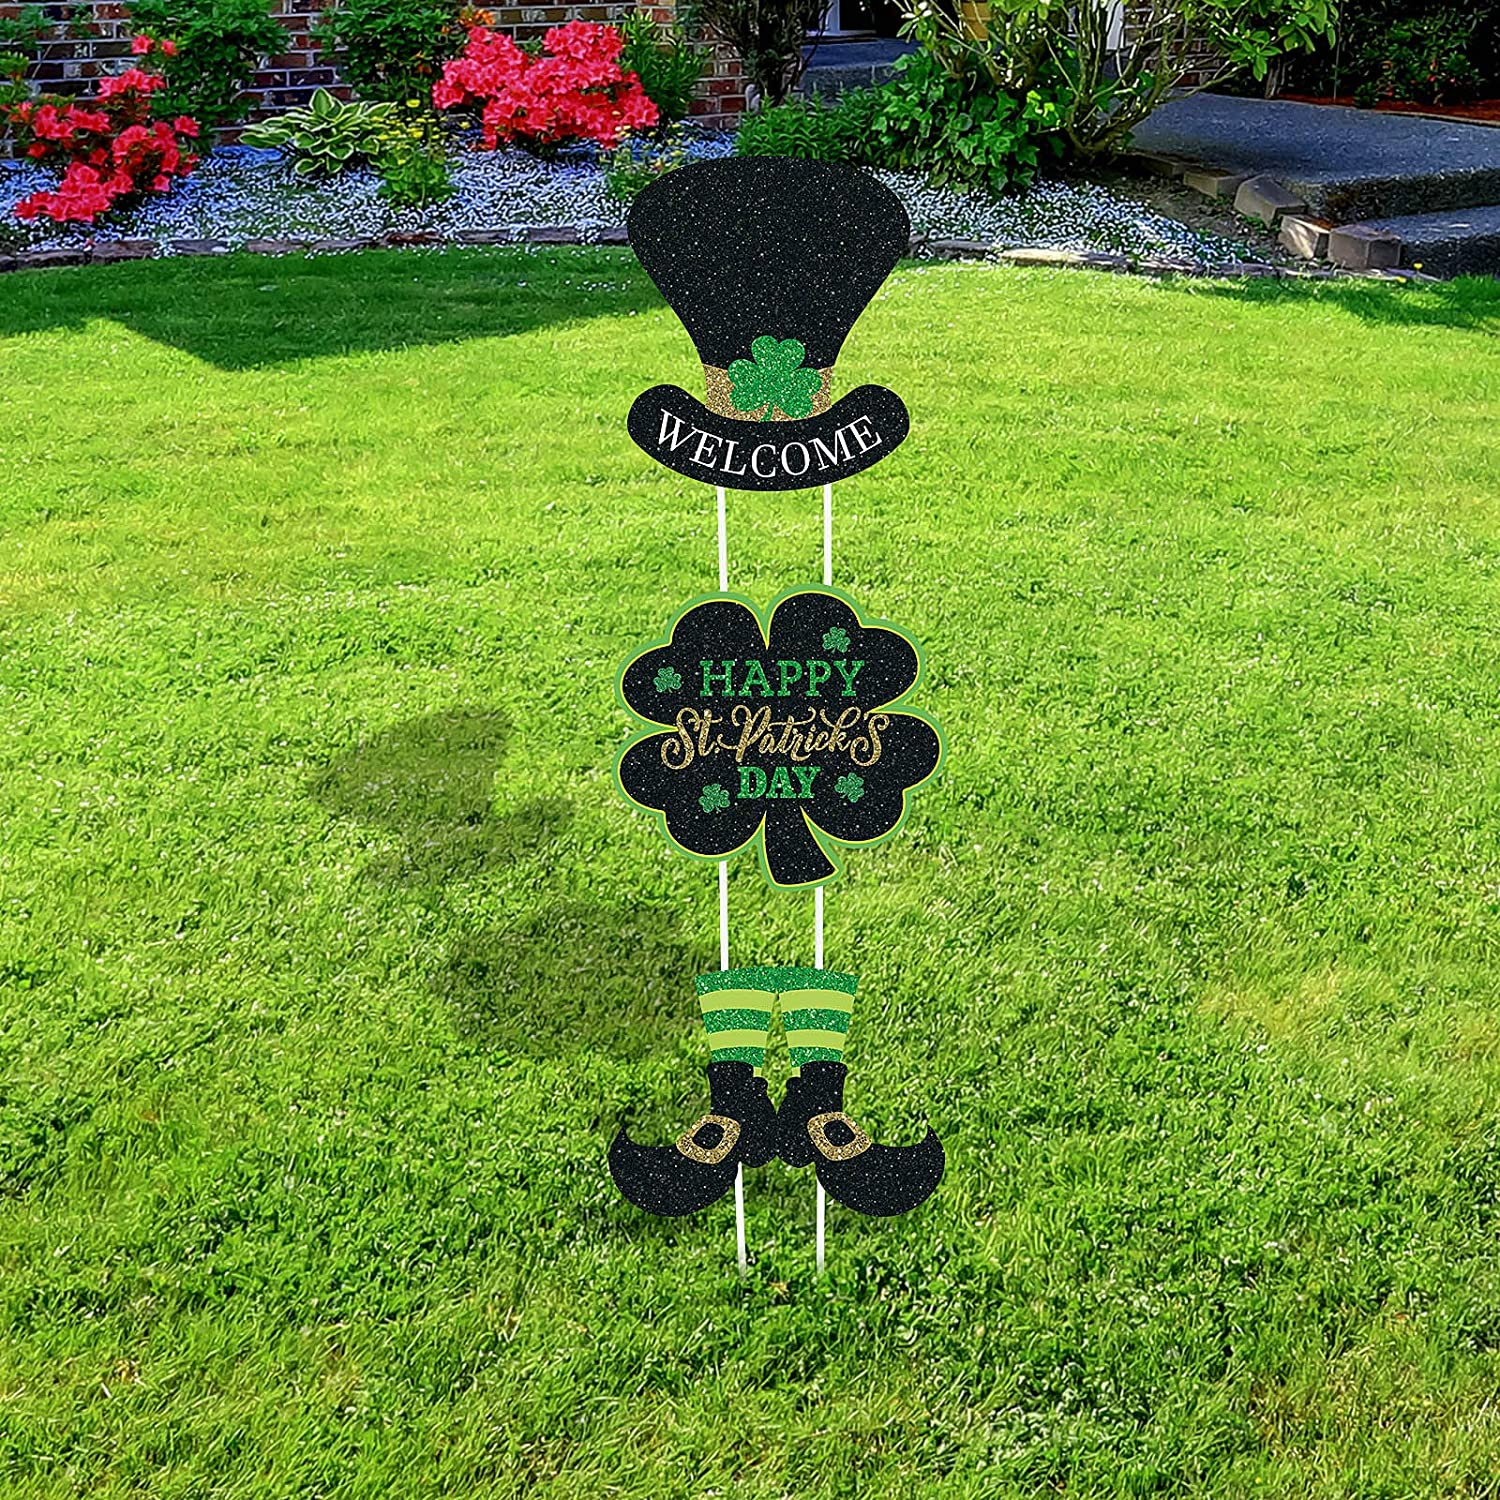 3 Pieces St St Patricks Day Yard Signs with Stakes Patricks Day Clover Signs Outdoor Lawn Decorations Irish Leprechaun Horseshoe Shamrock with Happy St Patricks Day Sign with Stakes